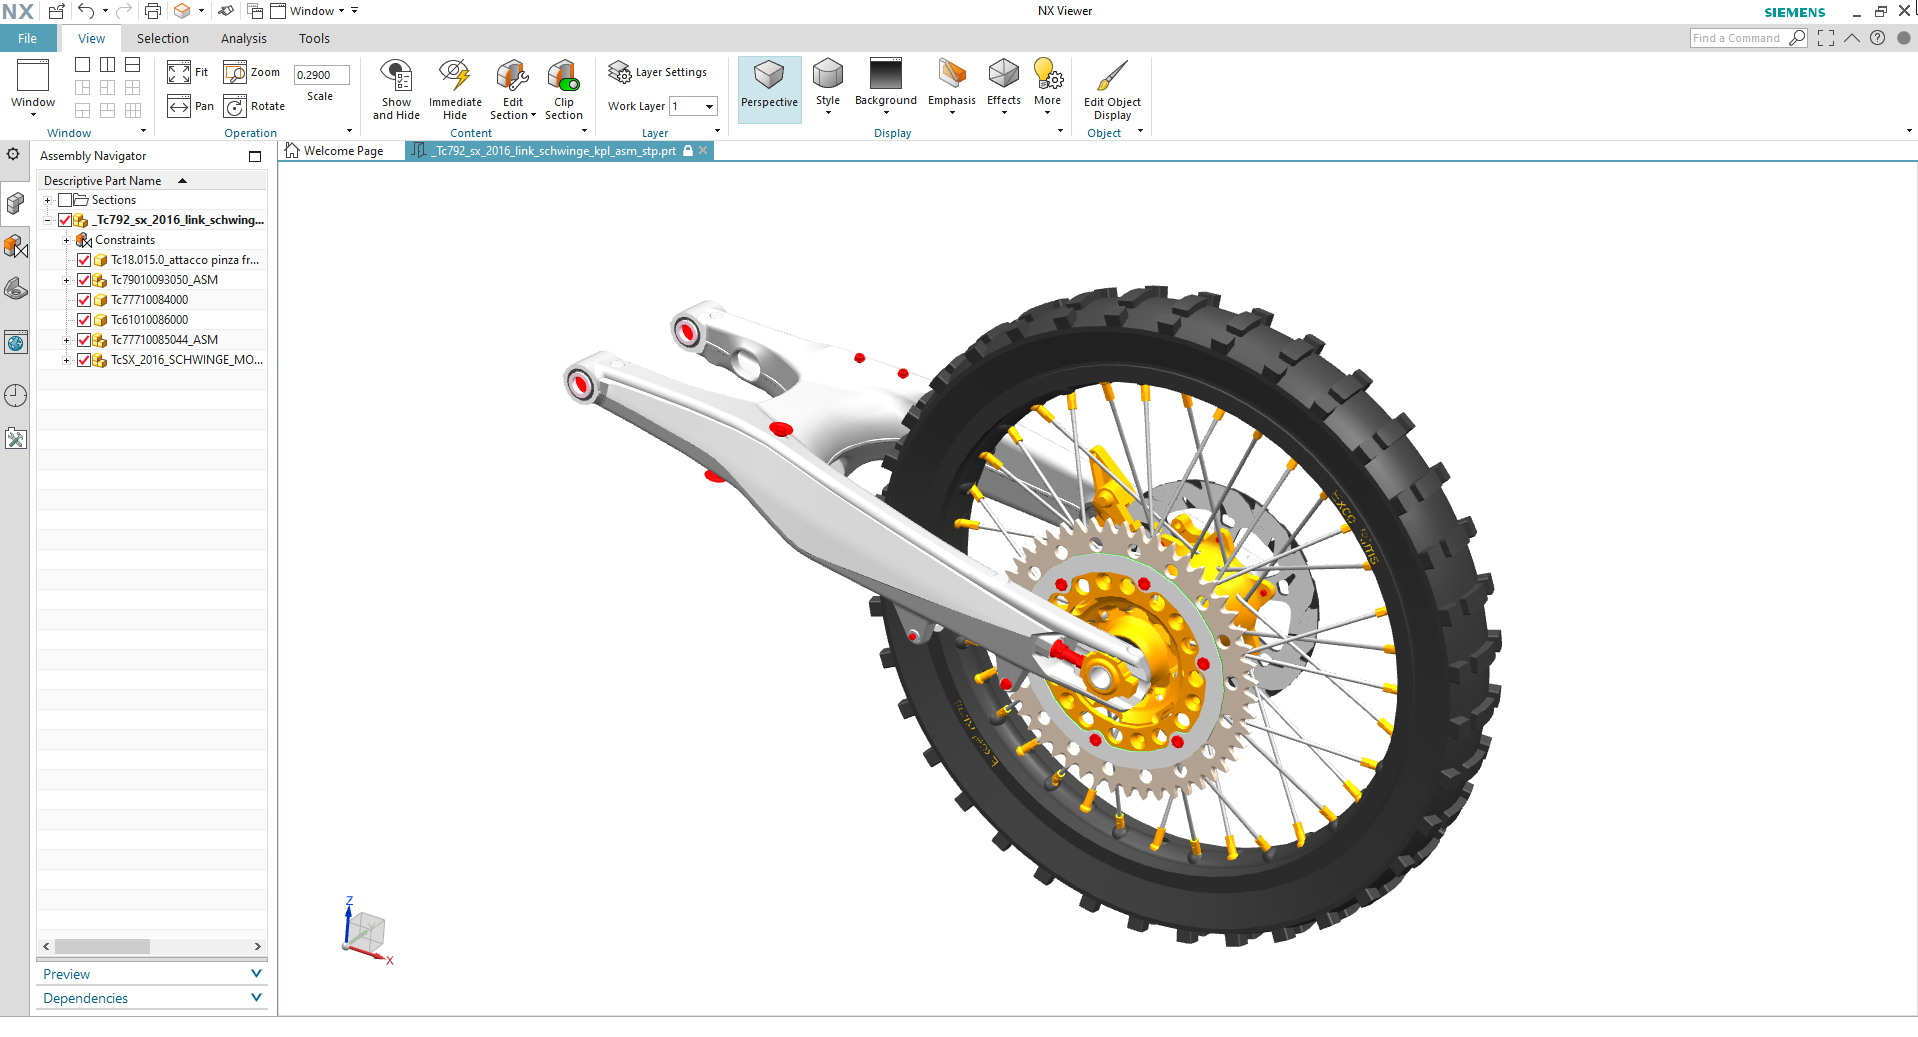 nx viewer view